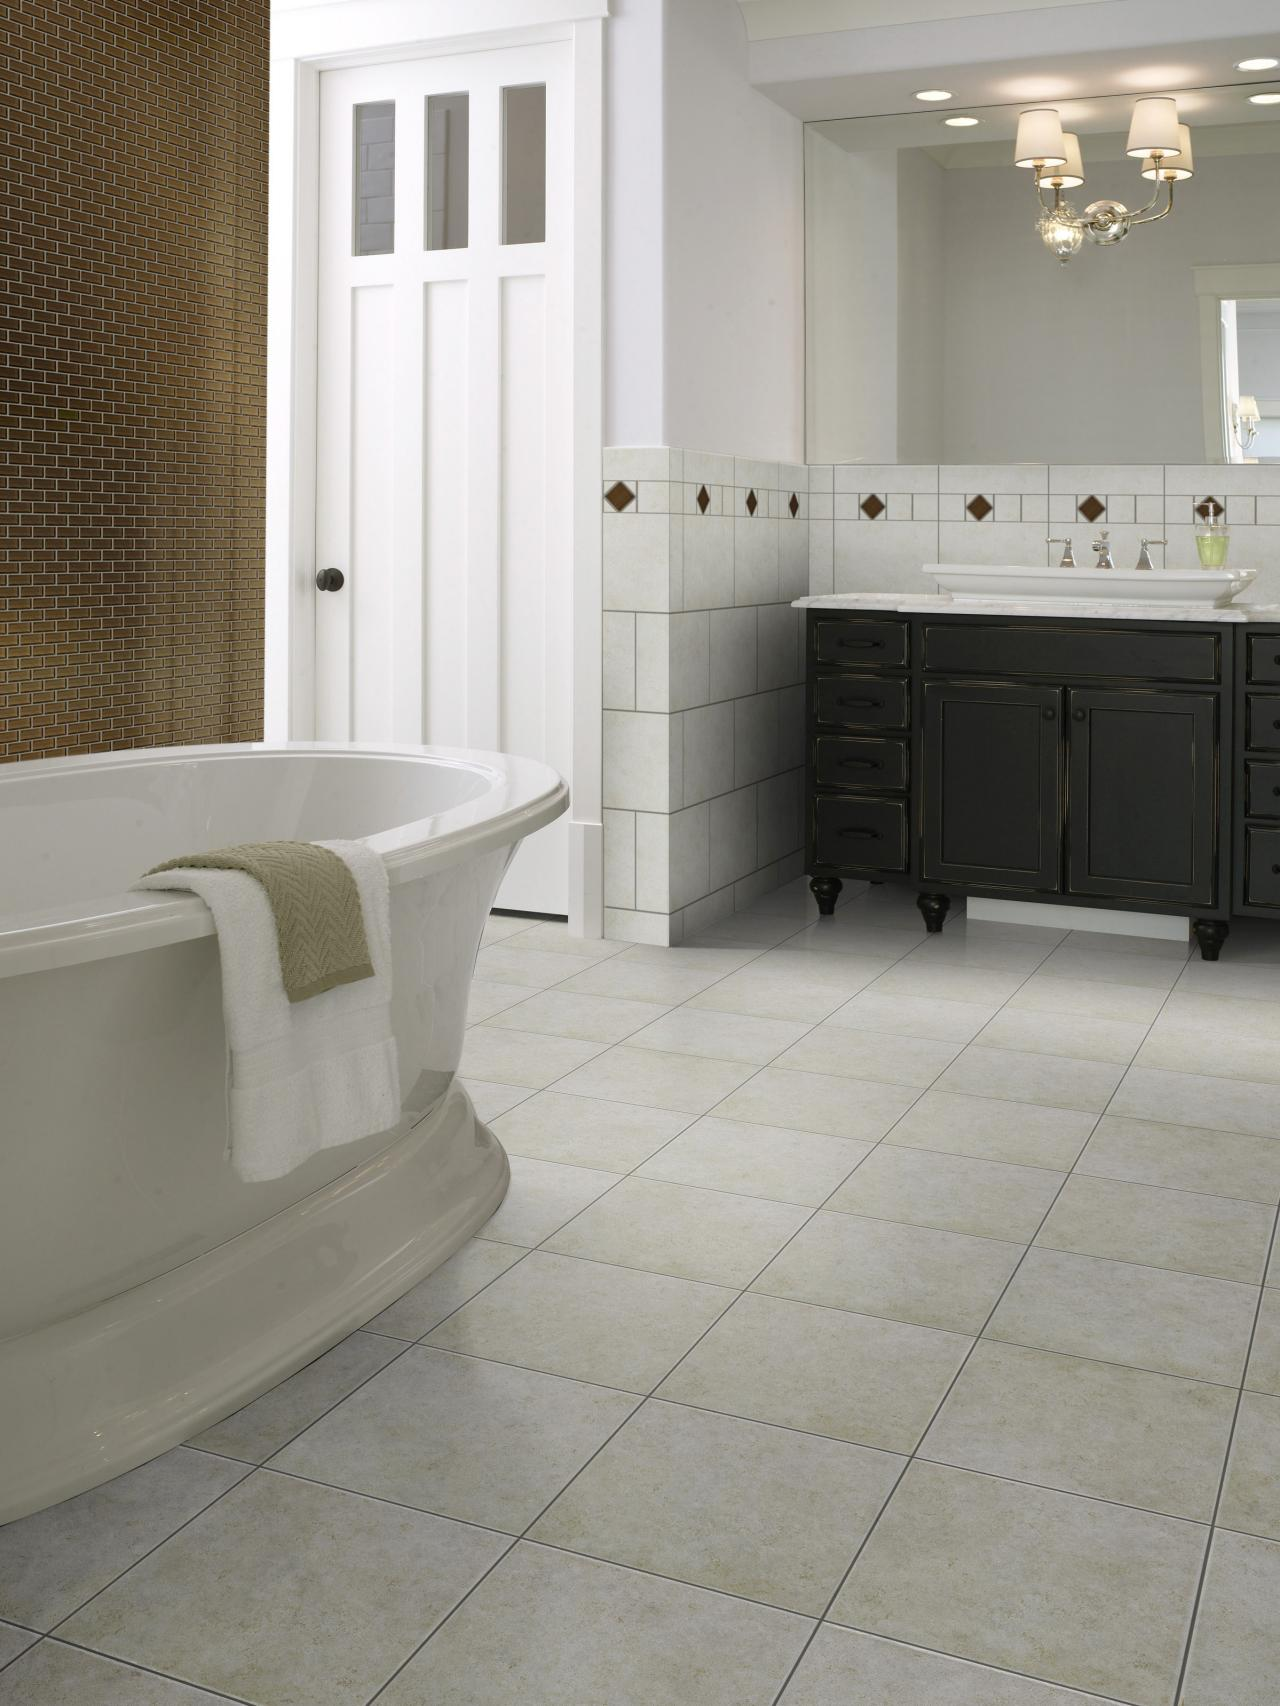 tiling a bathroom floor in addition to bathroom floor tile ideas combined with some decorative accessories for your bathroom design 139 23174